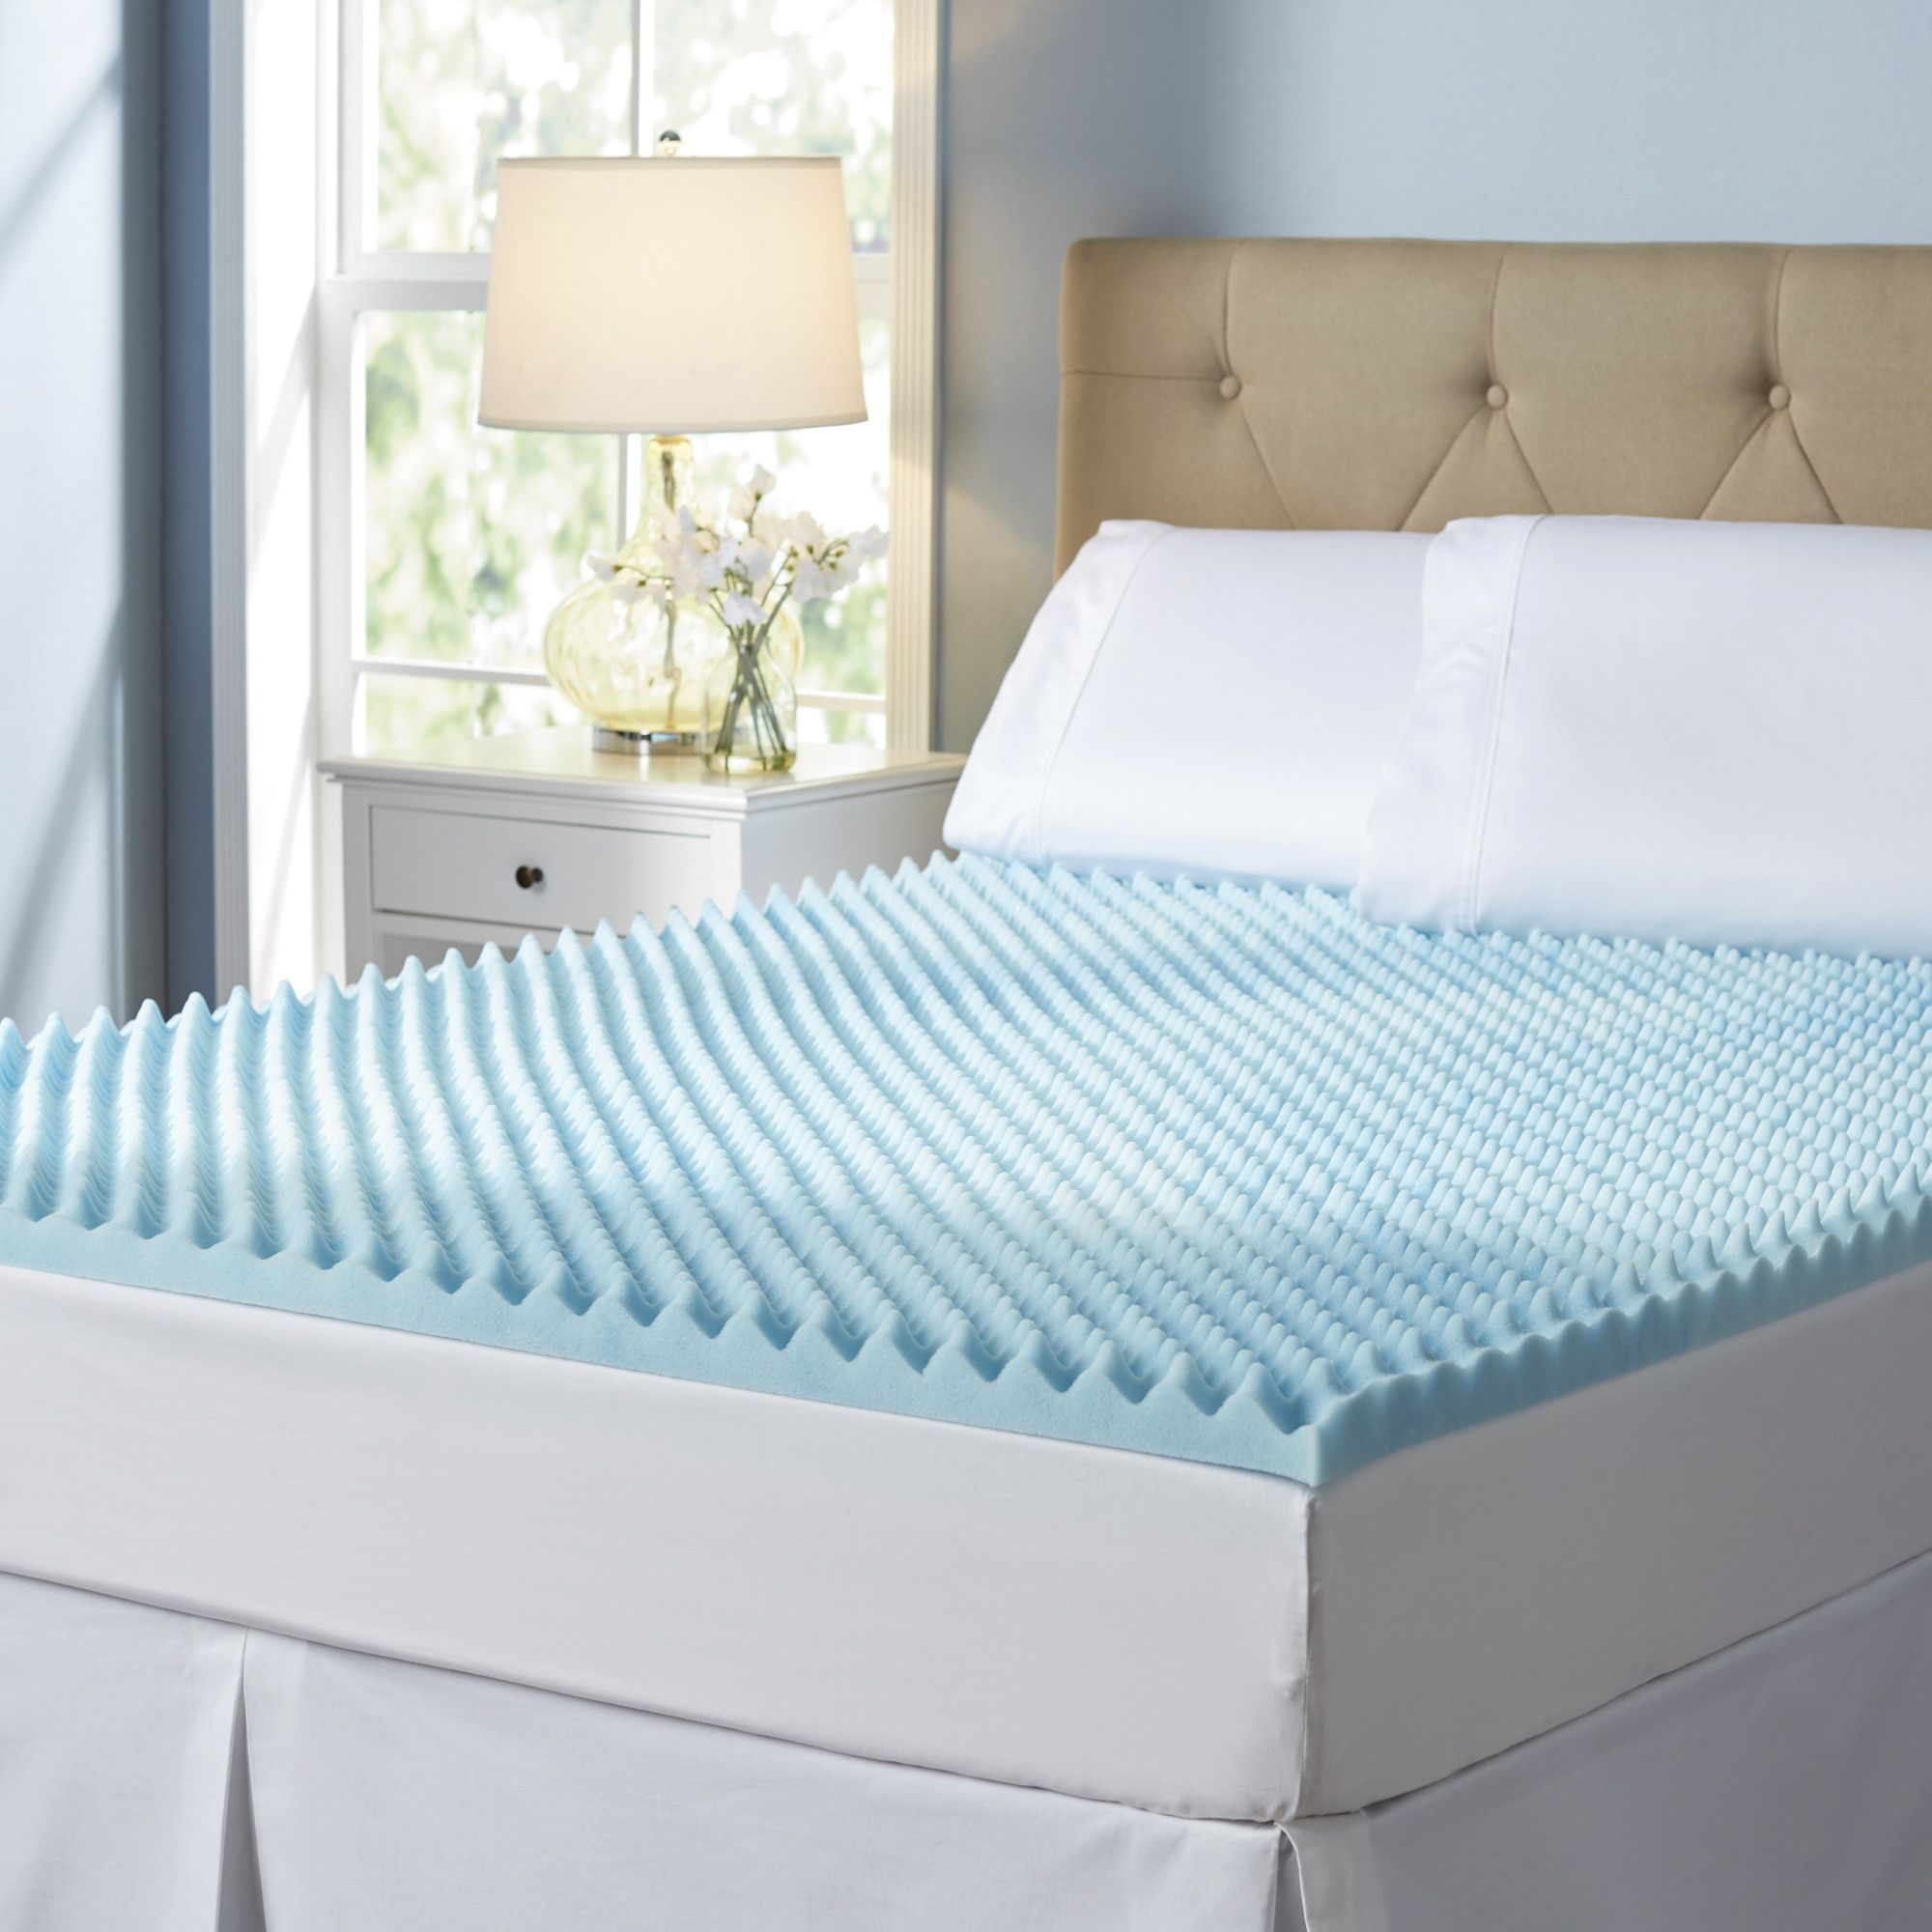 topper novaform comfort xfile memory the cooling mattress ideas trends gel best reviews foam royal pad for and uncategorized picture